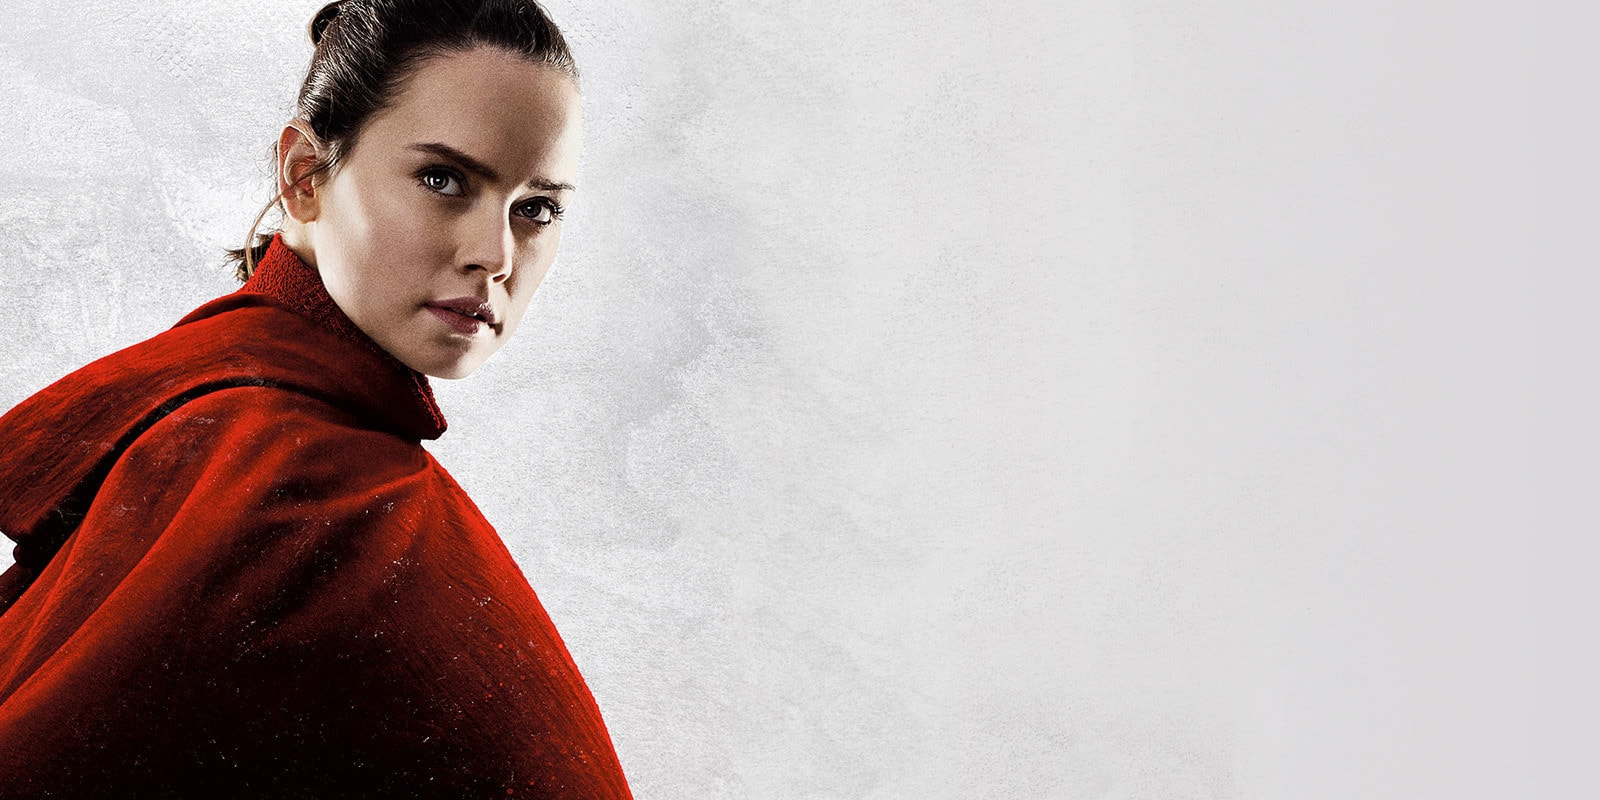 NL - Star Wars The Last Jedi - Flex-Content Hero Object - Synopsis